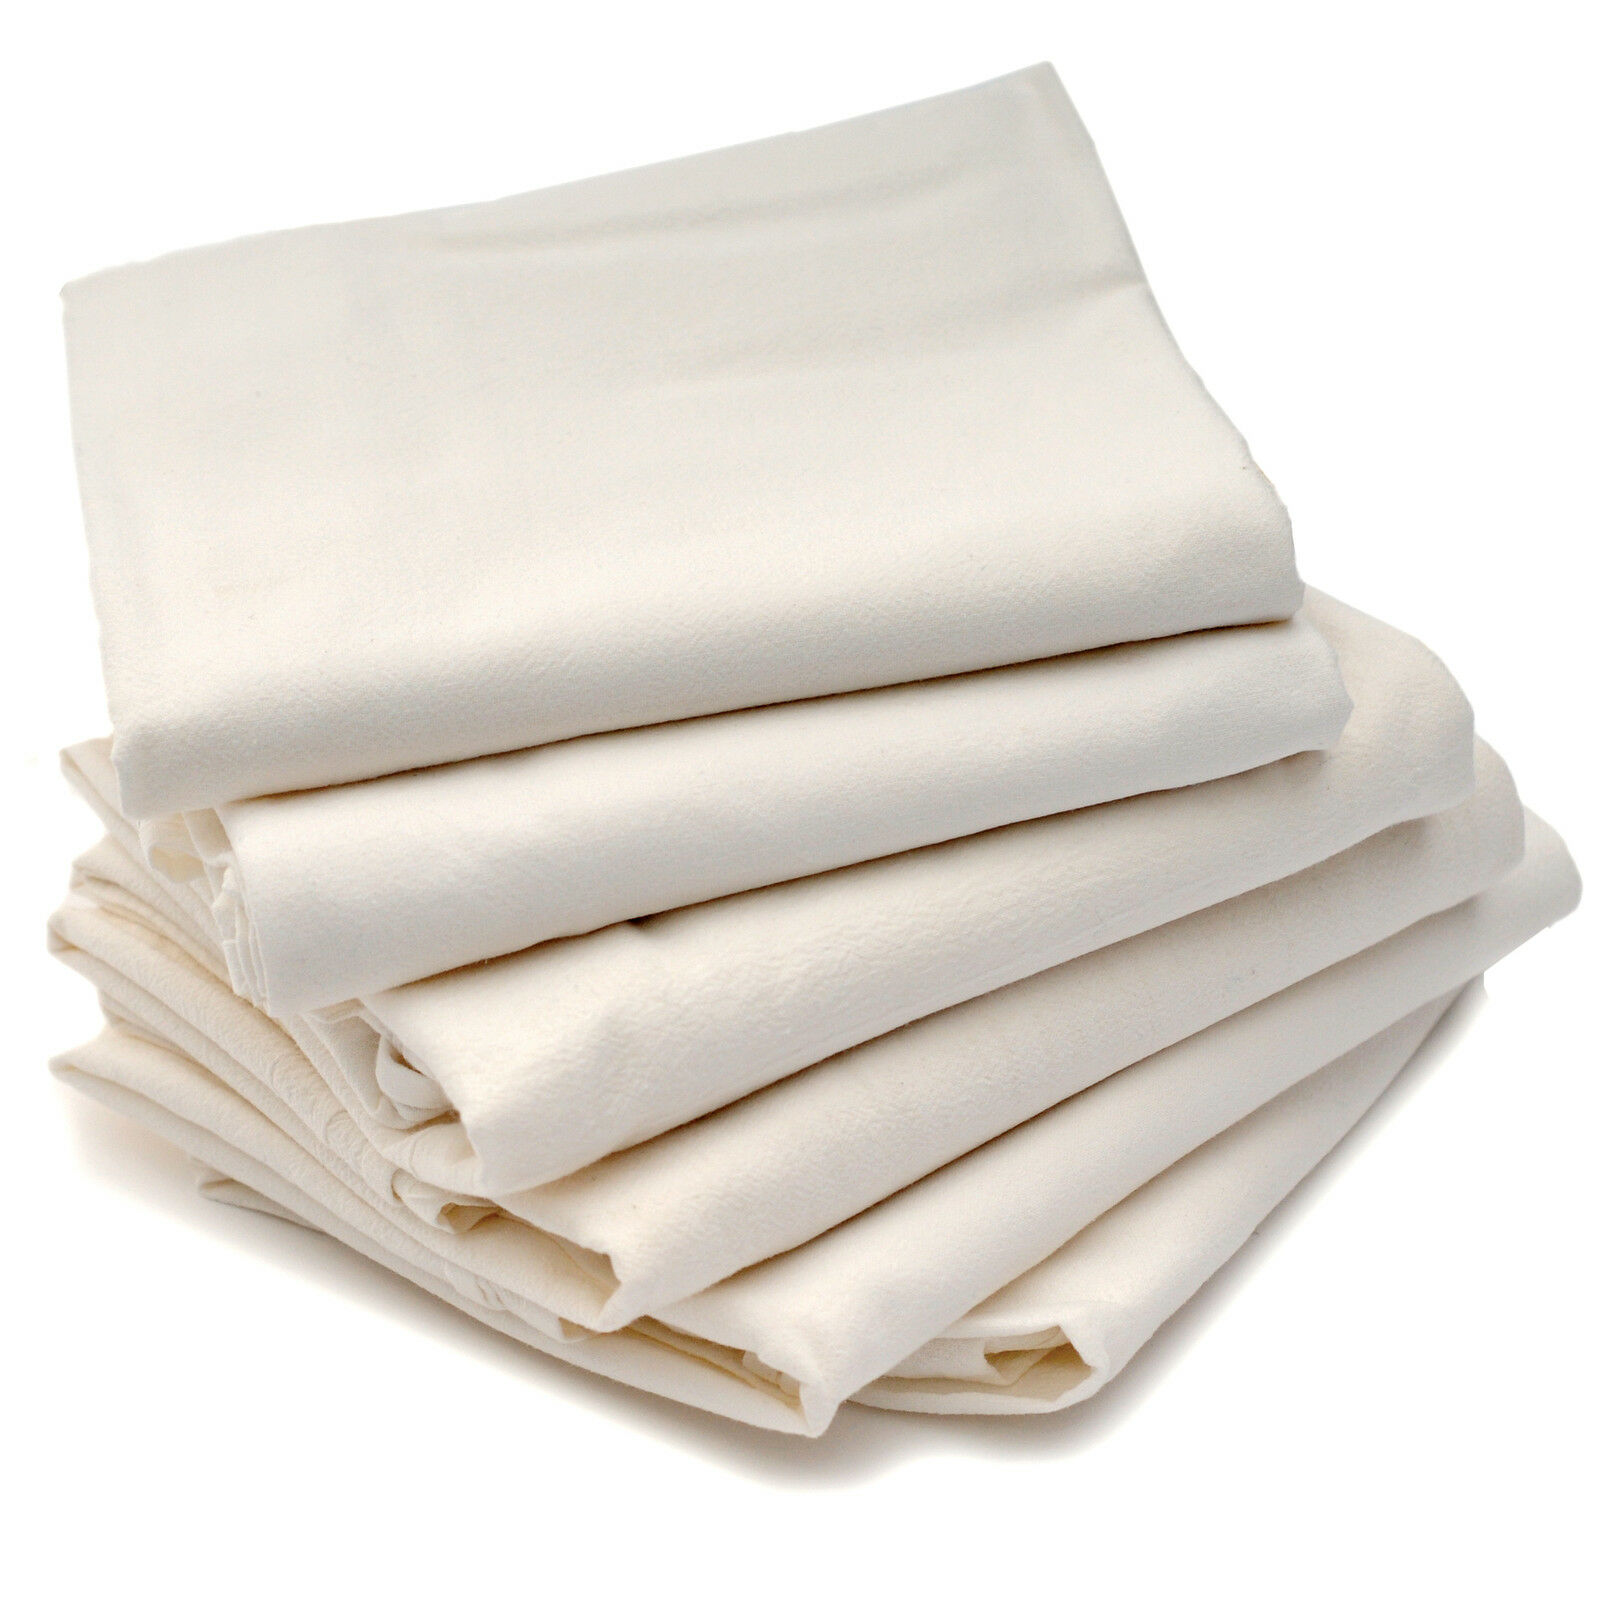 "Norpro 100% Cotton Flour Sack Towels 30"" x 29"" set of 2"